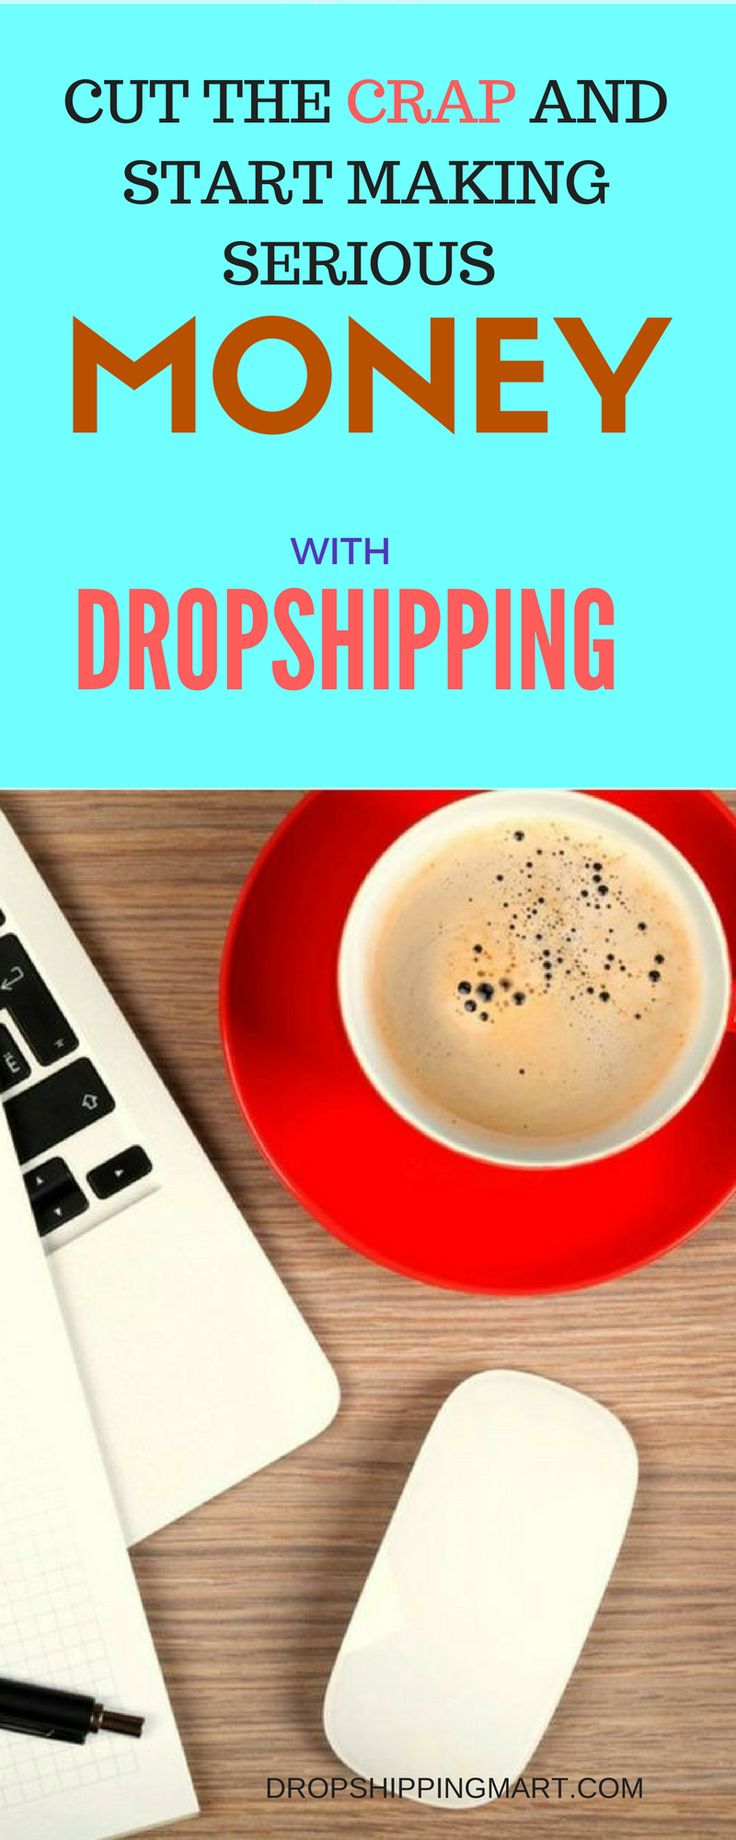 The dropshipping business is usually manufacturer, wholesaler, and shipper.  When you join up with a #dropshipping operation, you can order a number of products or, in some cases, only one. #makemoneyonline